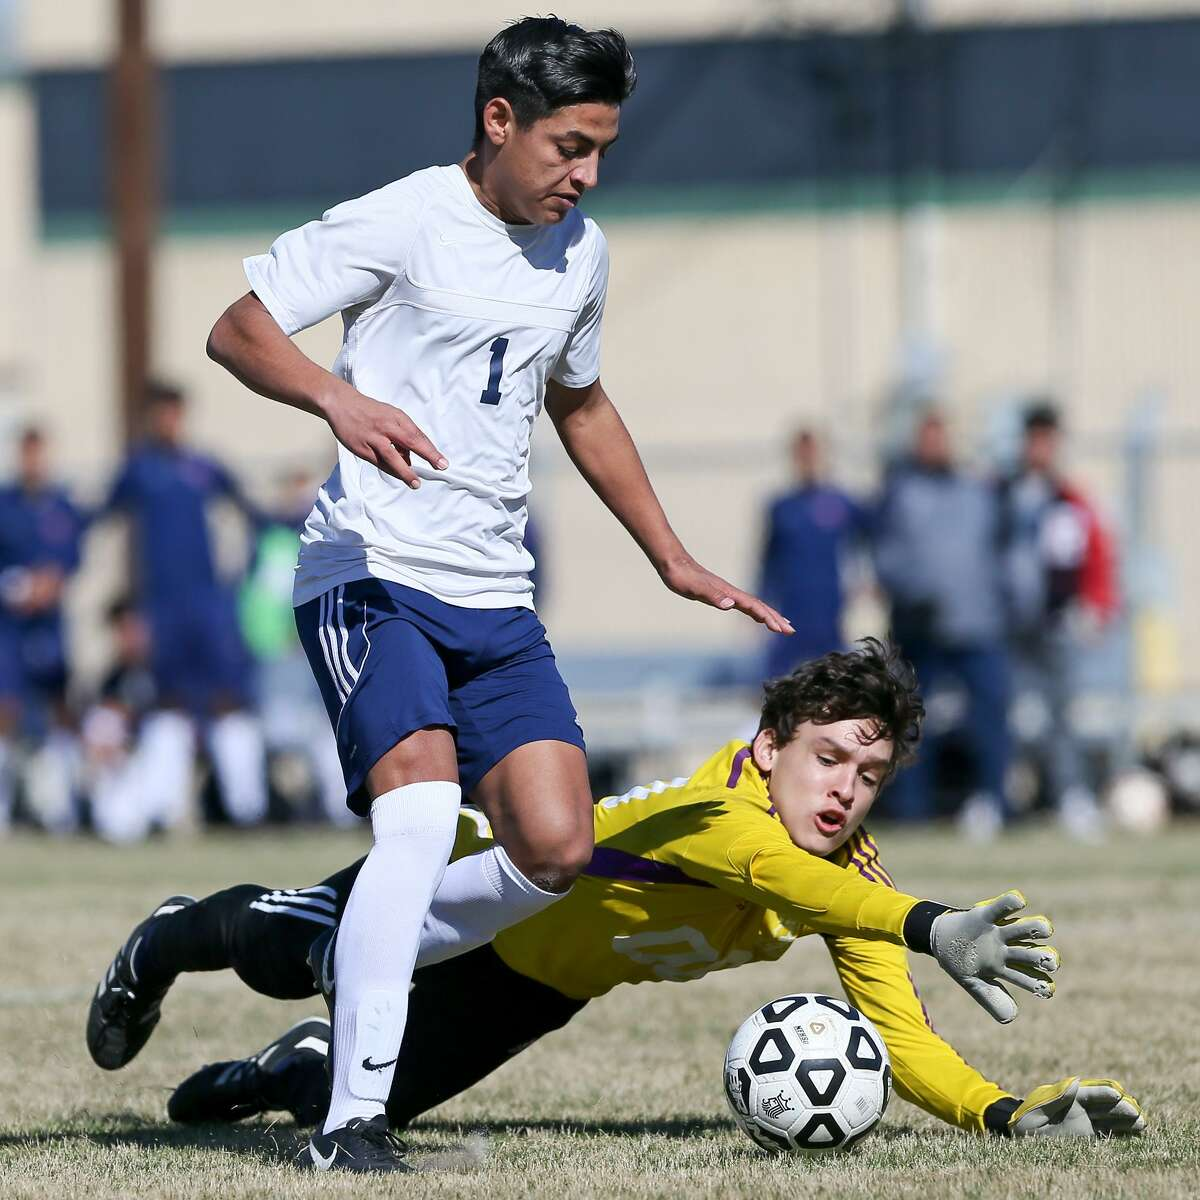 Roosevelt's Carlos Alvarez slips past Central Catholic goalkeeper Alejandro Chavarria as he drives to the goal during the second half of their high school boys soccer game in the 2018 North East Boys Soccer Tournamemt at Blossom Athletic Center East on Saturday, Jan. 13, 2018. Central Catholic beat Roosevelt 3-0. MARVIN PFEIFFER/mpfeiffer@express-news.net